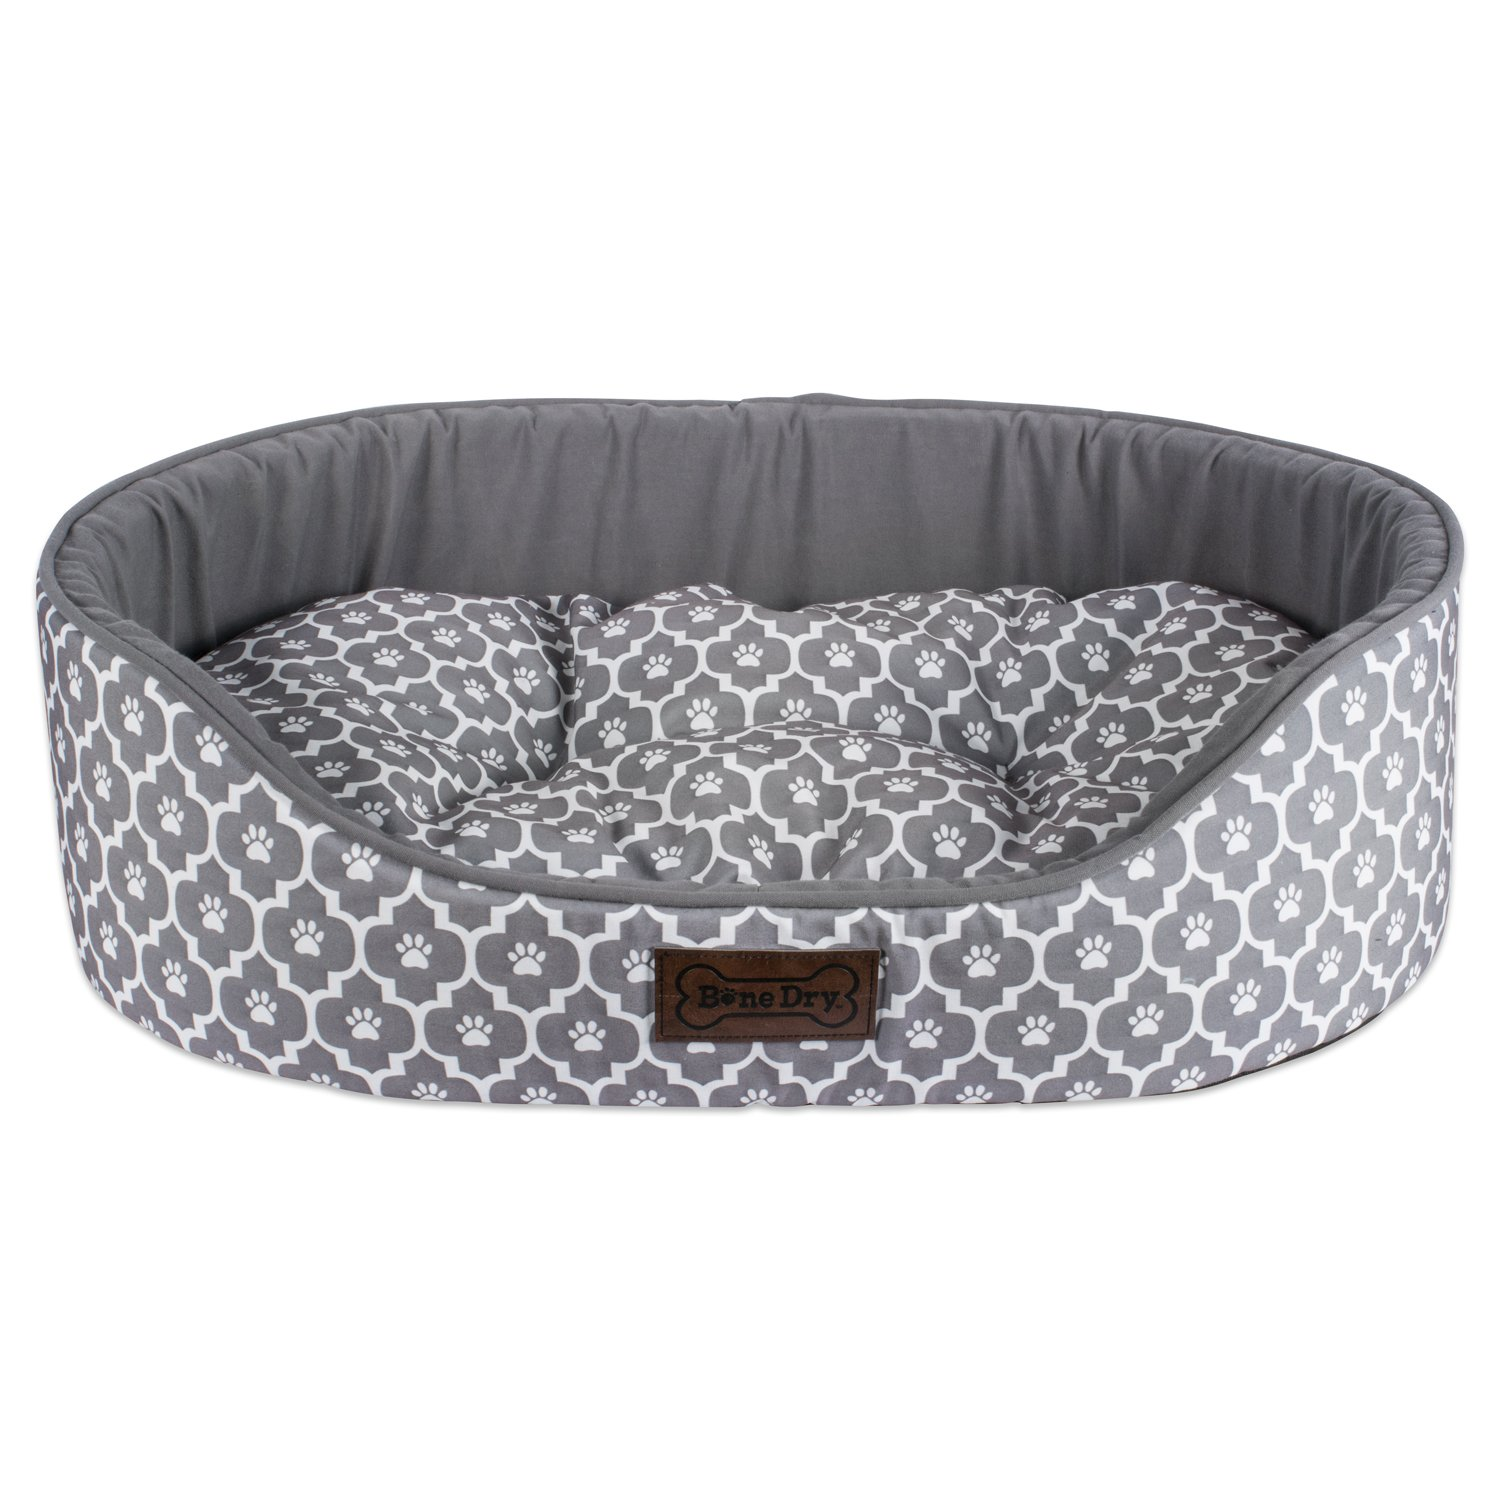 DII Bone Dry Lattice Pet Bed, 20x28x8'', Modern & Fashionable Medium Oval Bed For Dogs Or Cats-Gray